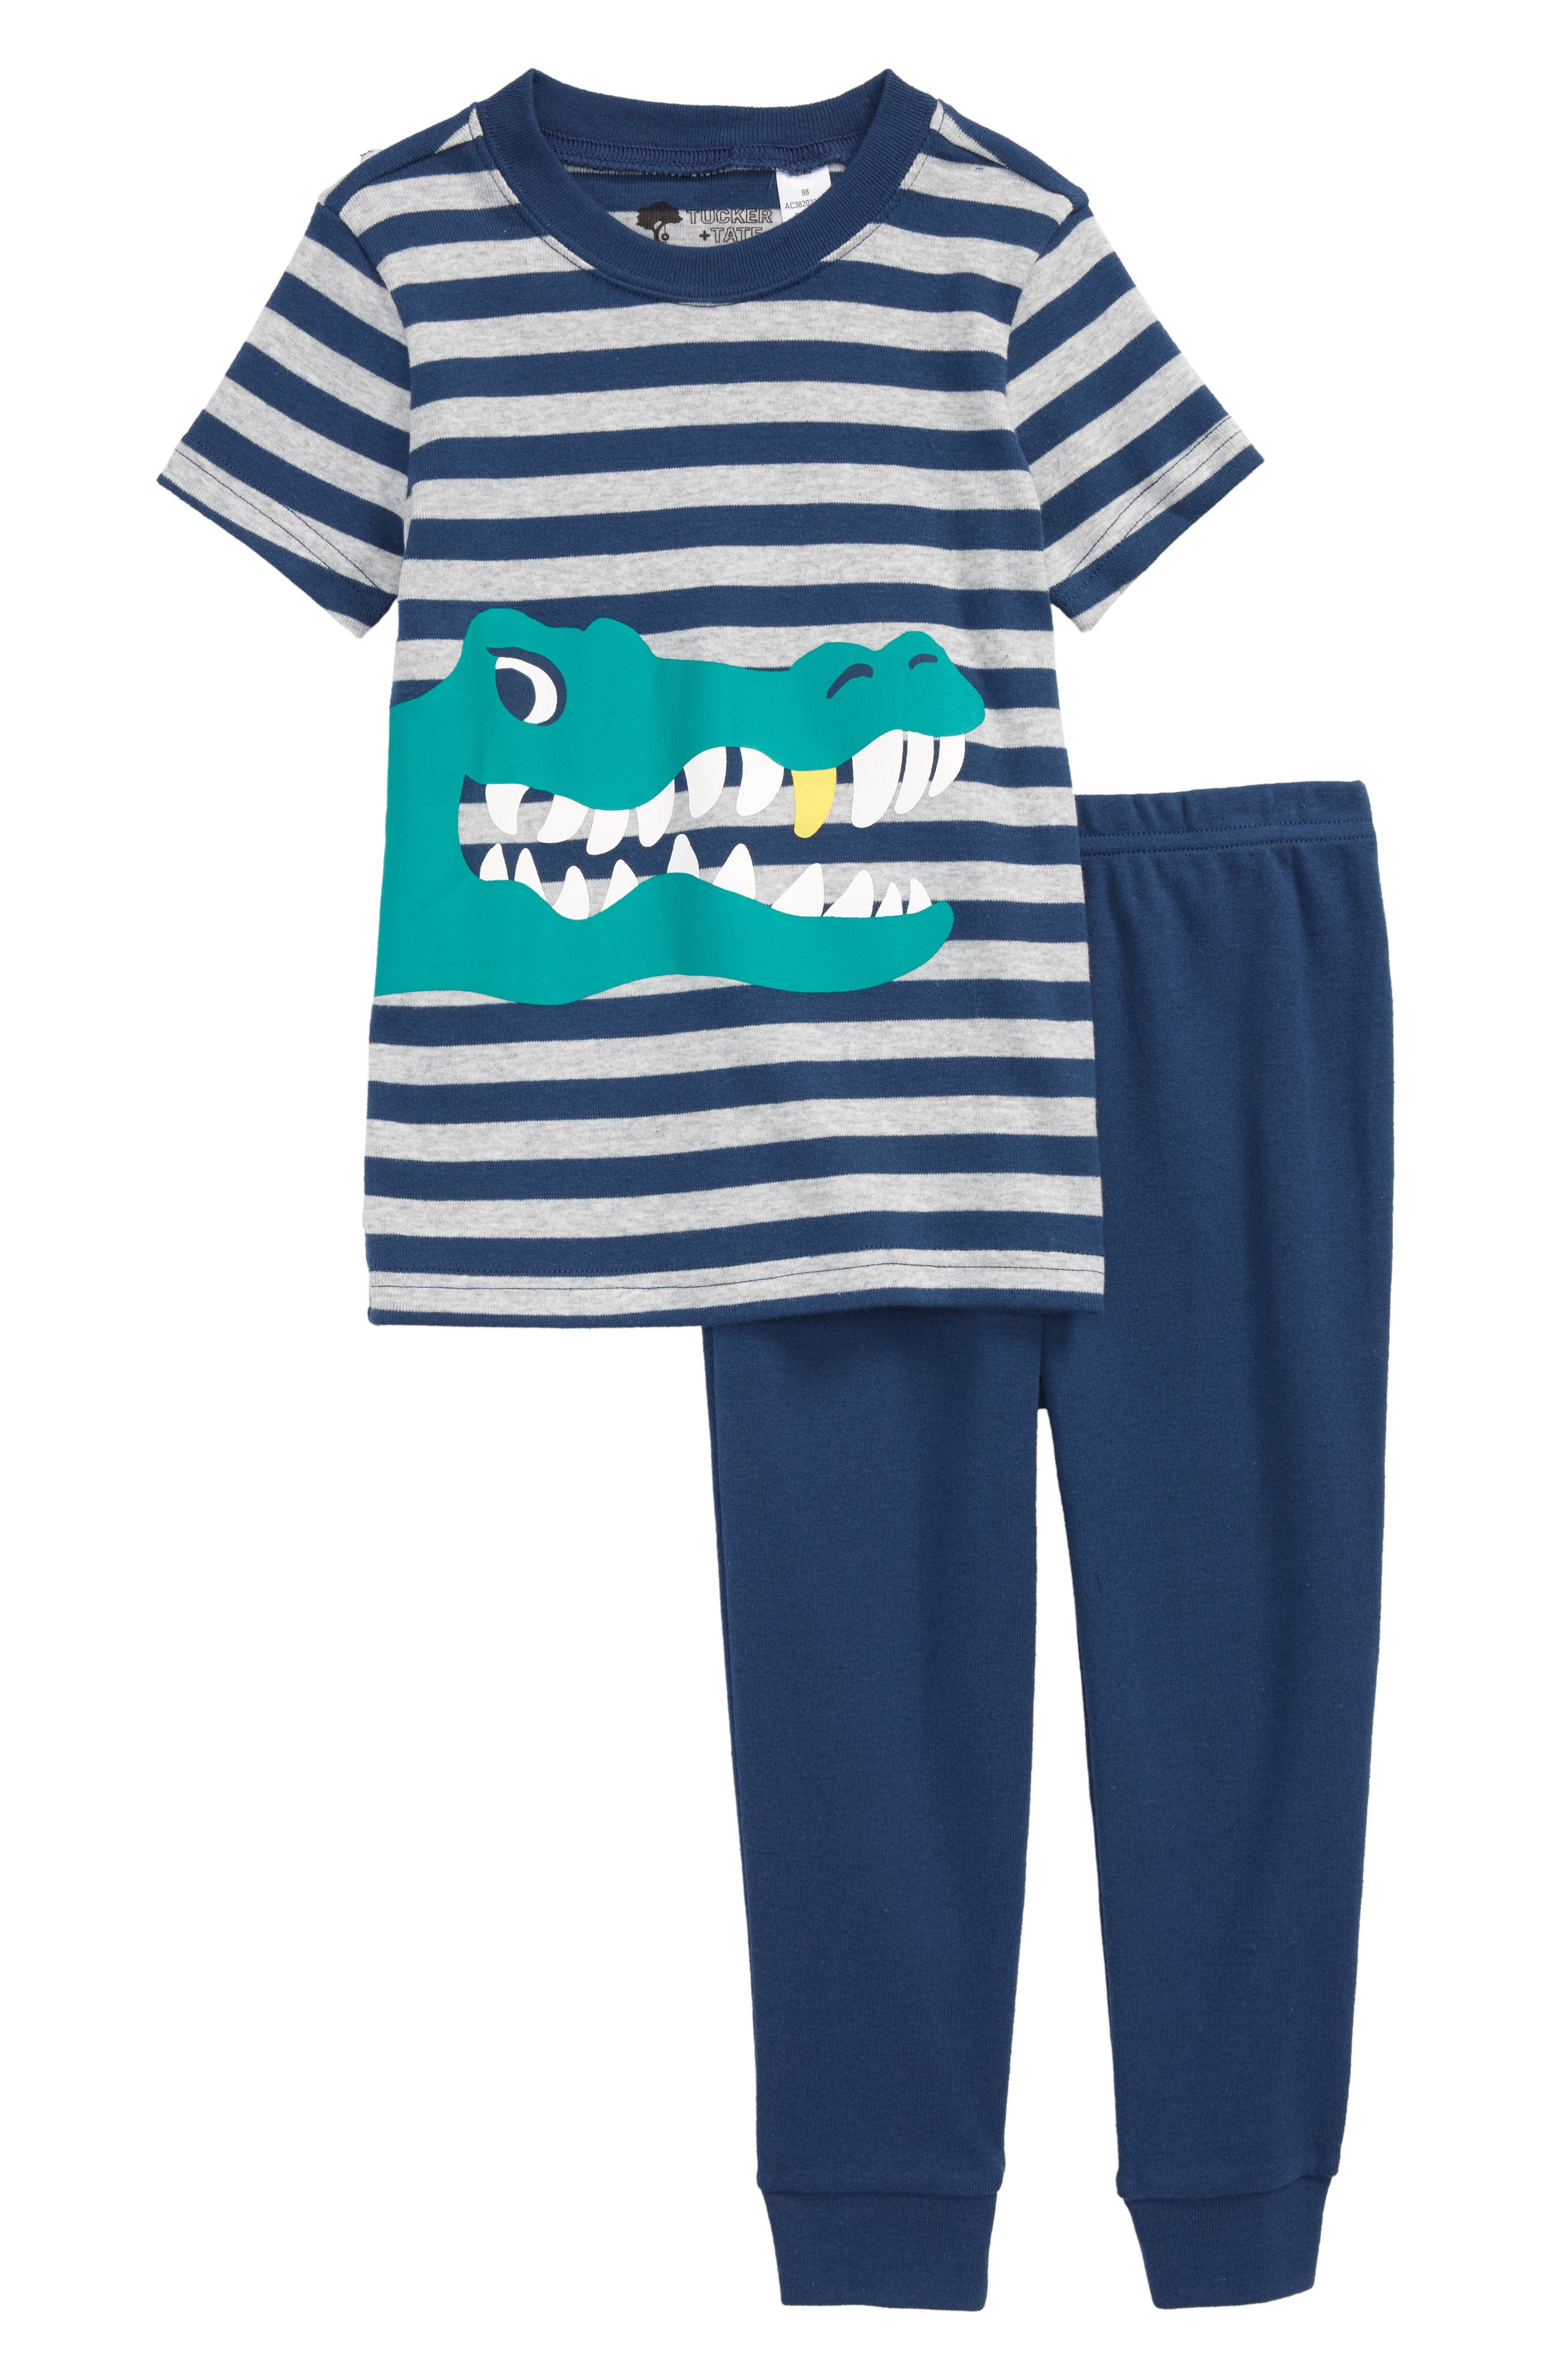 Two-Piece Fitted Pajamas,                         Main,                         color, Navy Denim- Grey Croc